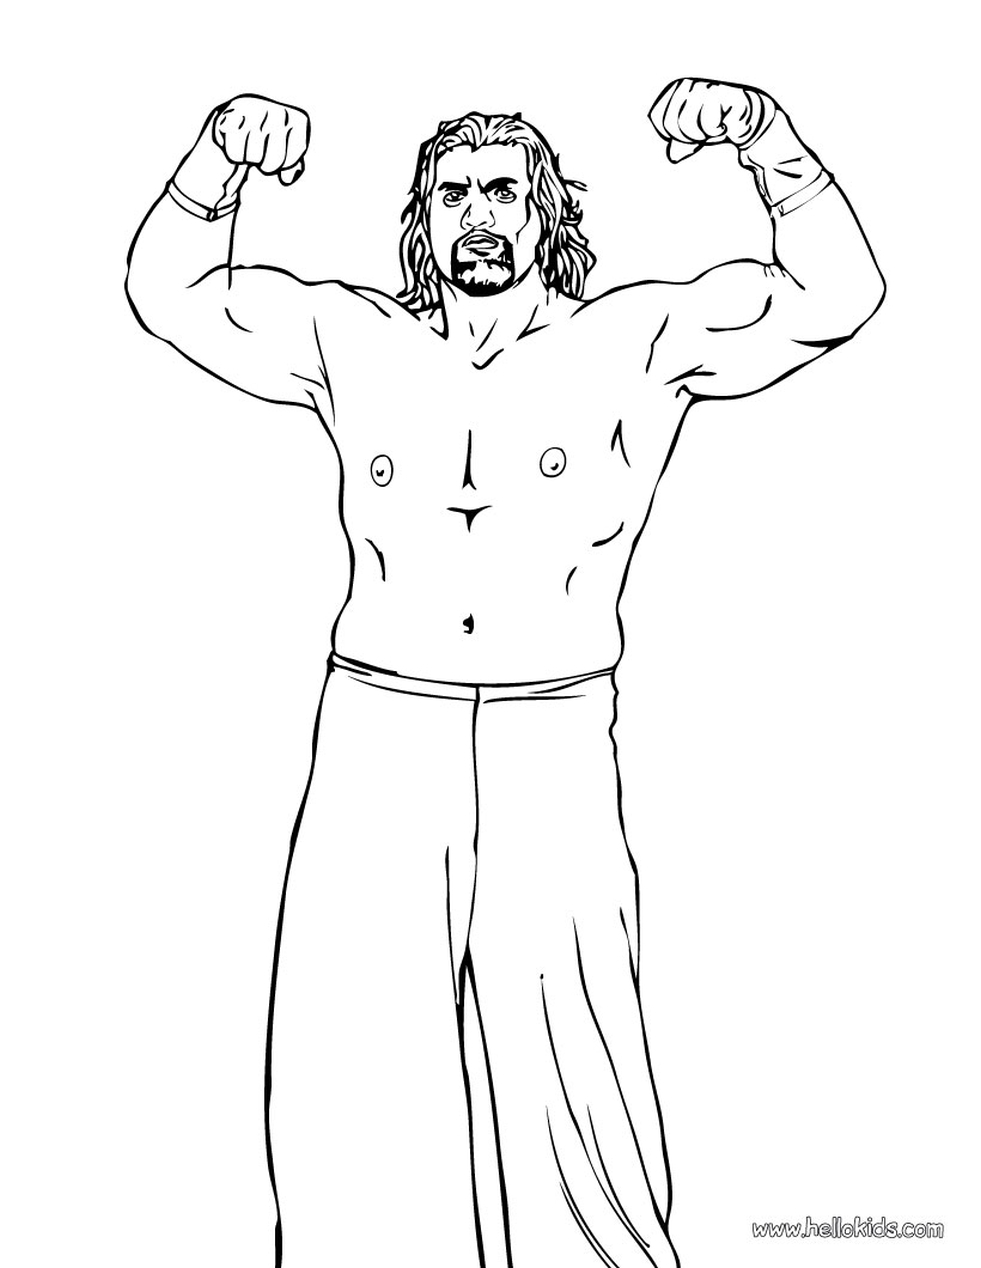 Printable wwe coloring pages the great khali - 75620